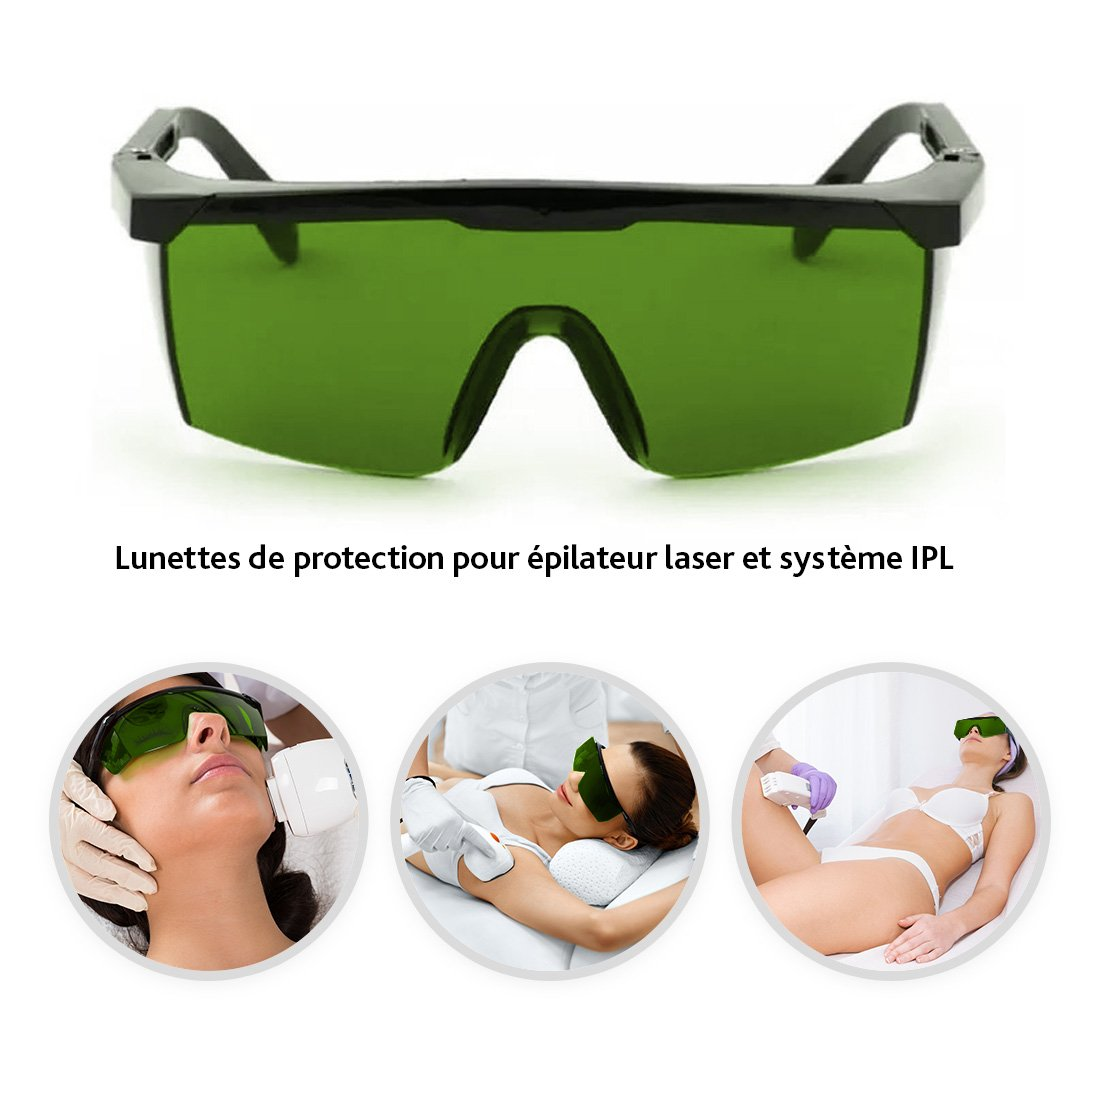 Laser goggles Glasses for permanent hair removal IPL laser hair removal protection glasses O/³ Laser Glasses Protection IPL